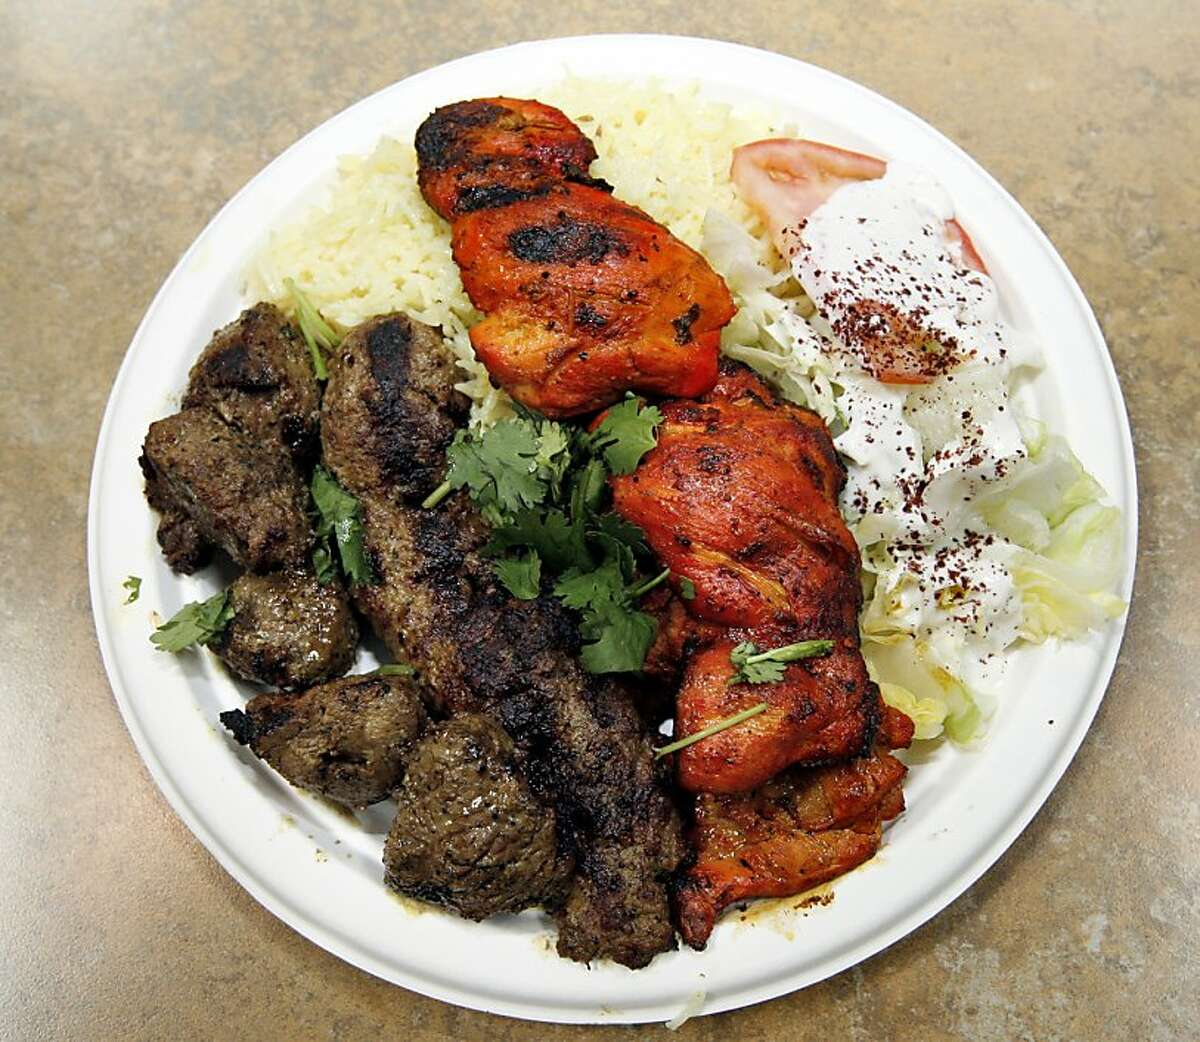 The Combo Kabab at Pamir Afghan Cuisine, one of the many ethnic restaurants in the Emery Bay Public Market, in Emeryville, Calif. on Monday, Aug. 11, 2008. Ran on: 08-21-2008 Owner and chef Ahmad Esmatyar, and his wife, Malika, work the grill at Pamir Afghan Cuisine in EmeryBay Public Market. The restaurant produces standout vegetarian and meat dishes, such as the kebab Soltani, below, which combines lamb or beef kebab with ground meat kebab and barbecue chicken for $9.99.